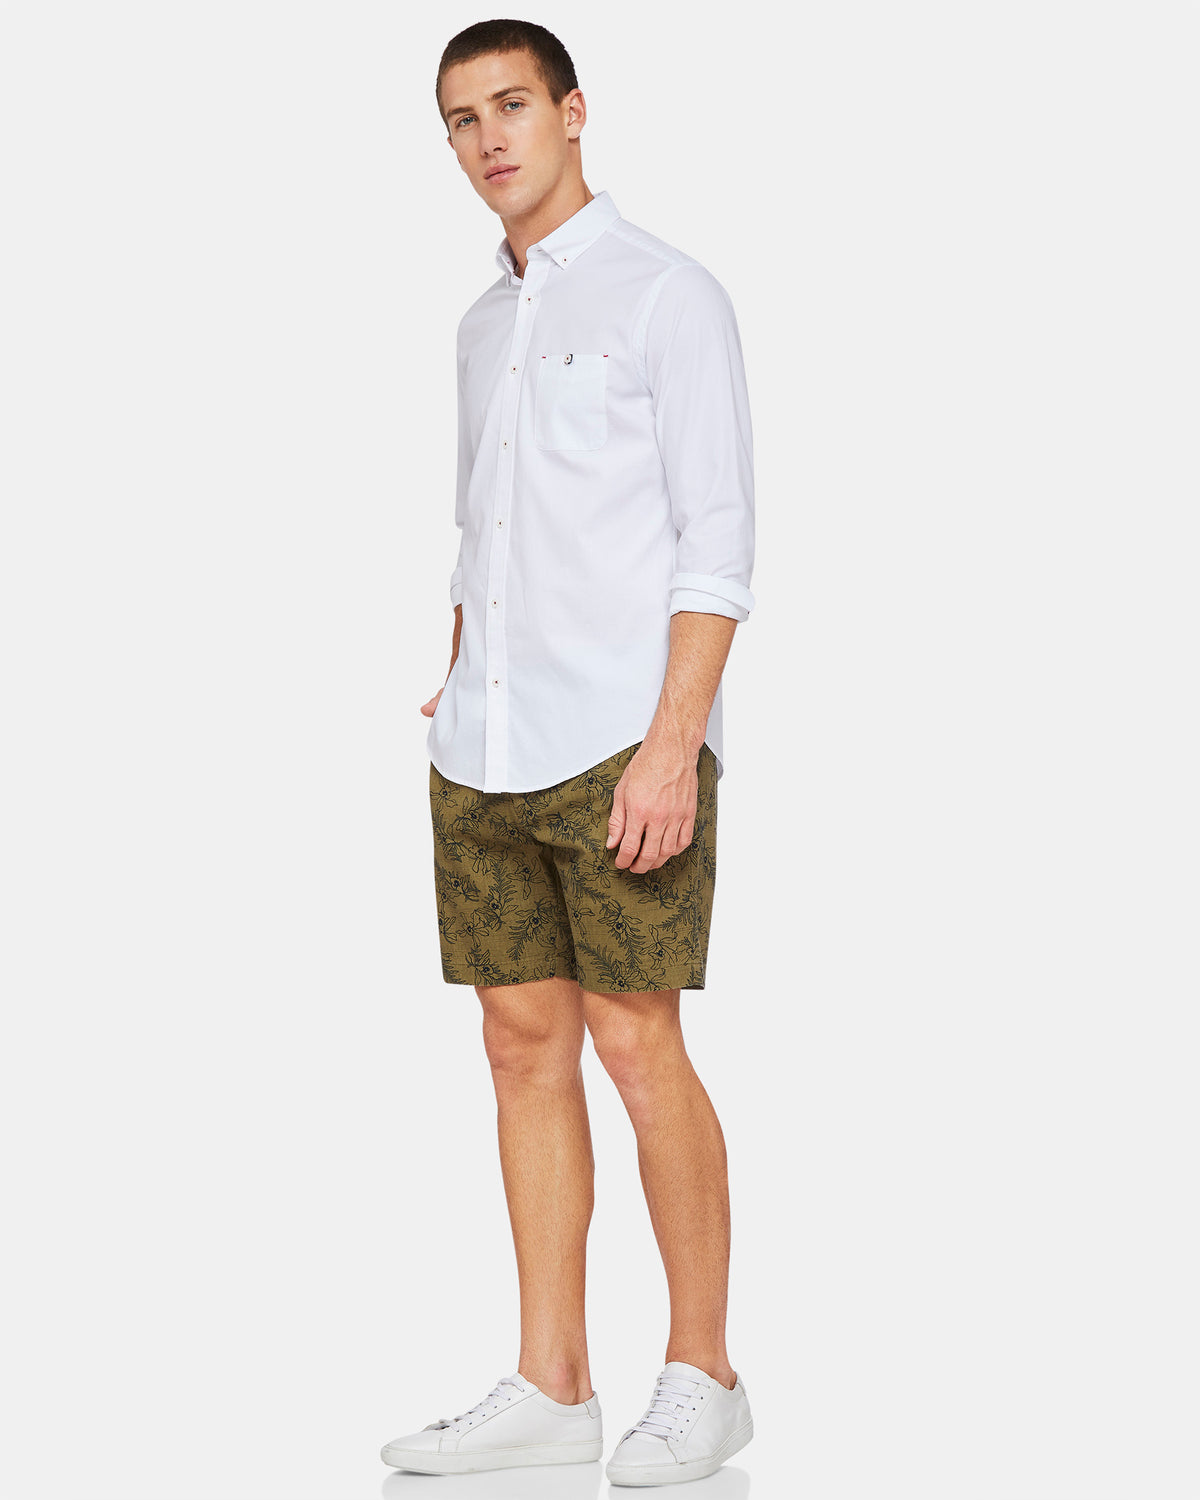 STRATTON REGULAR FIT SHIRT